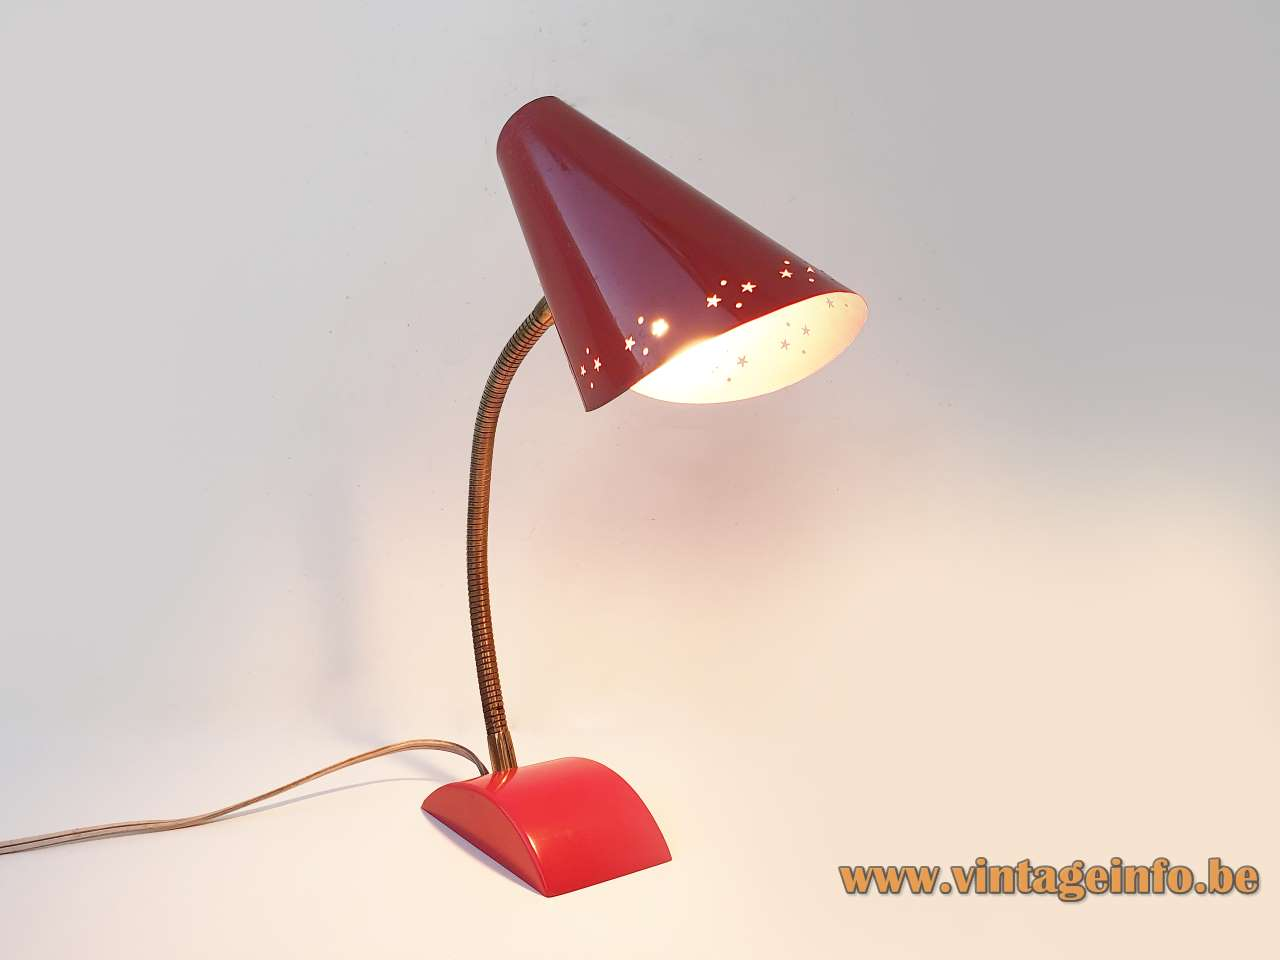 HoSo stars desk lamp red Bakelite base gooseneck conical folded lampshade tütenschirm Hoffmeister Germany 1950s 1960s